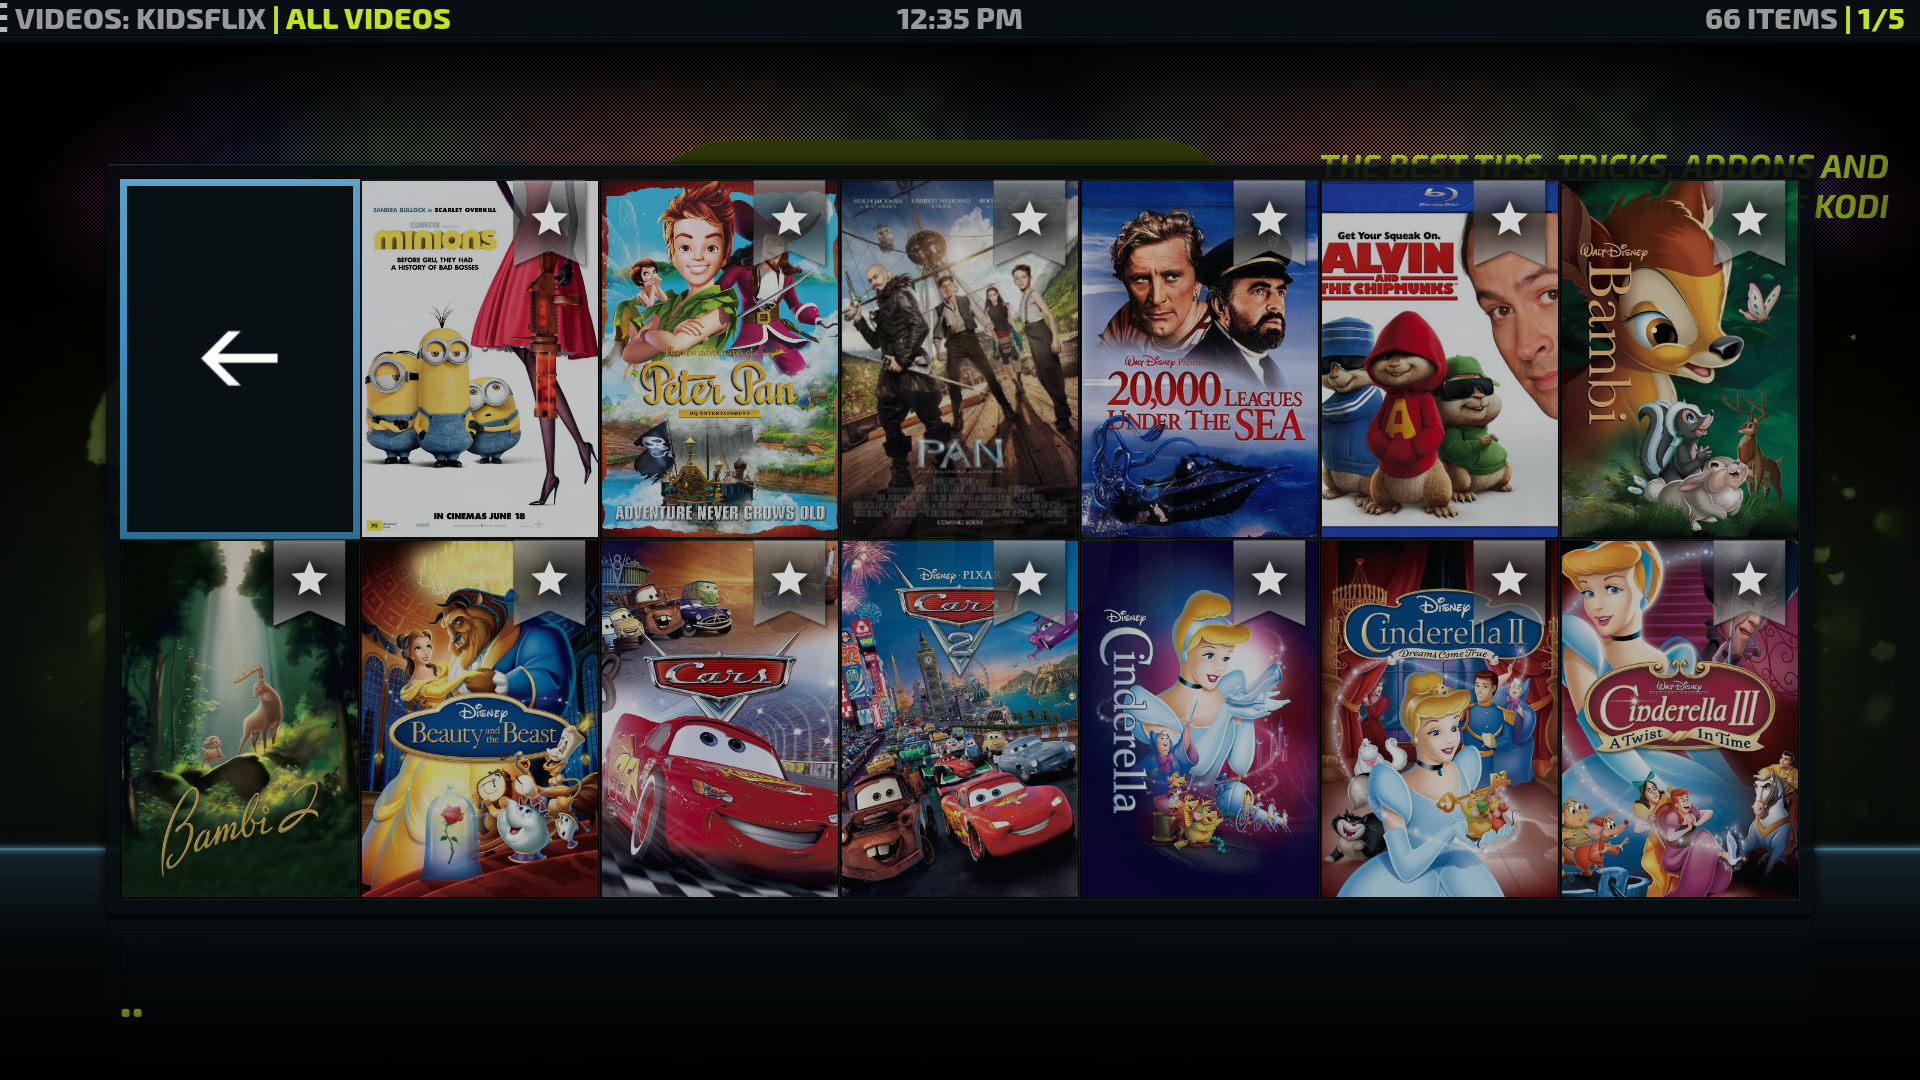 how to add kidsflix to kodi